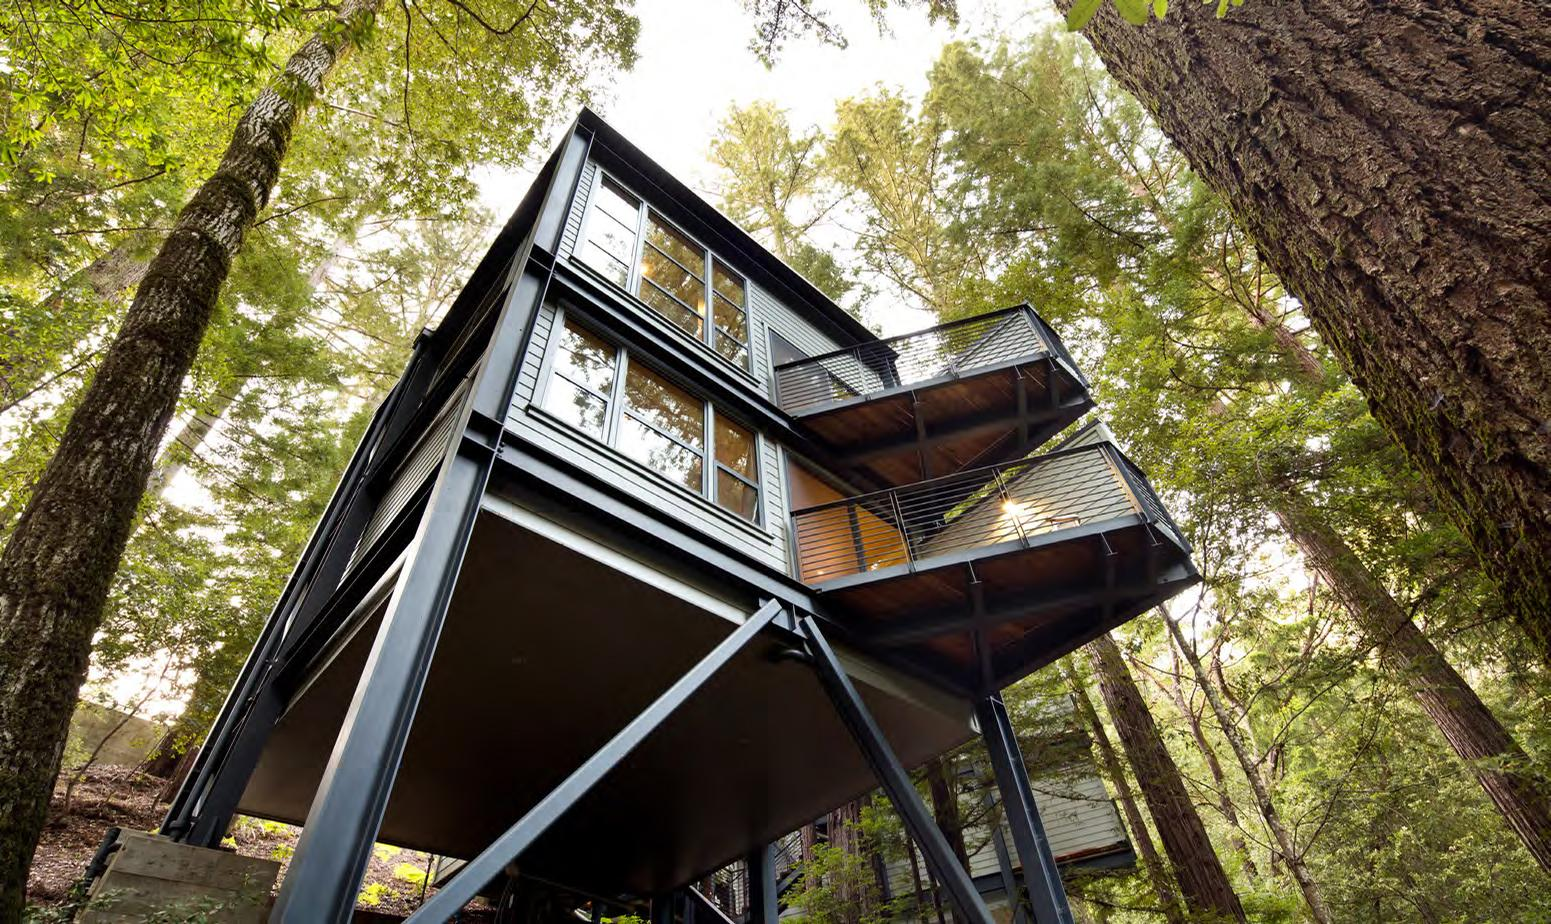 The retreat includes 14 guest rooms in the main retreat lodge encircled by 24 treehouses, and offers 16 acres of grounds designed for self-reflection